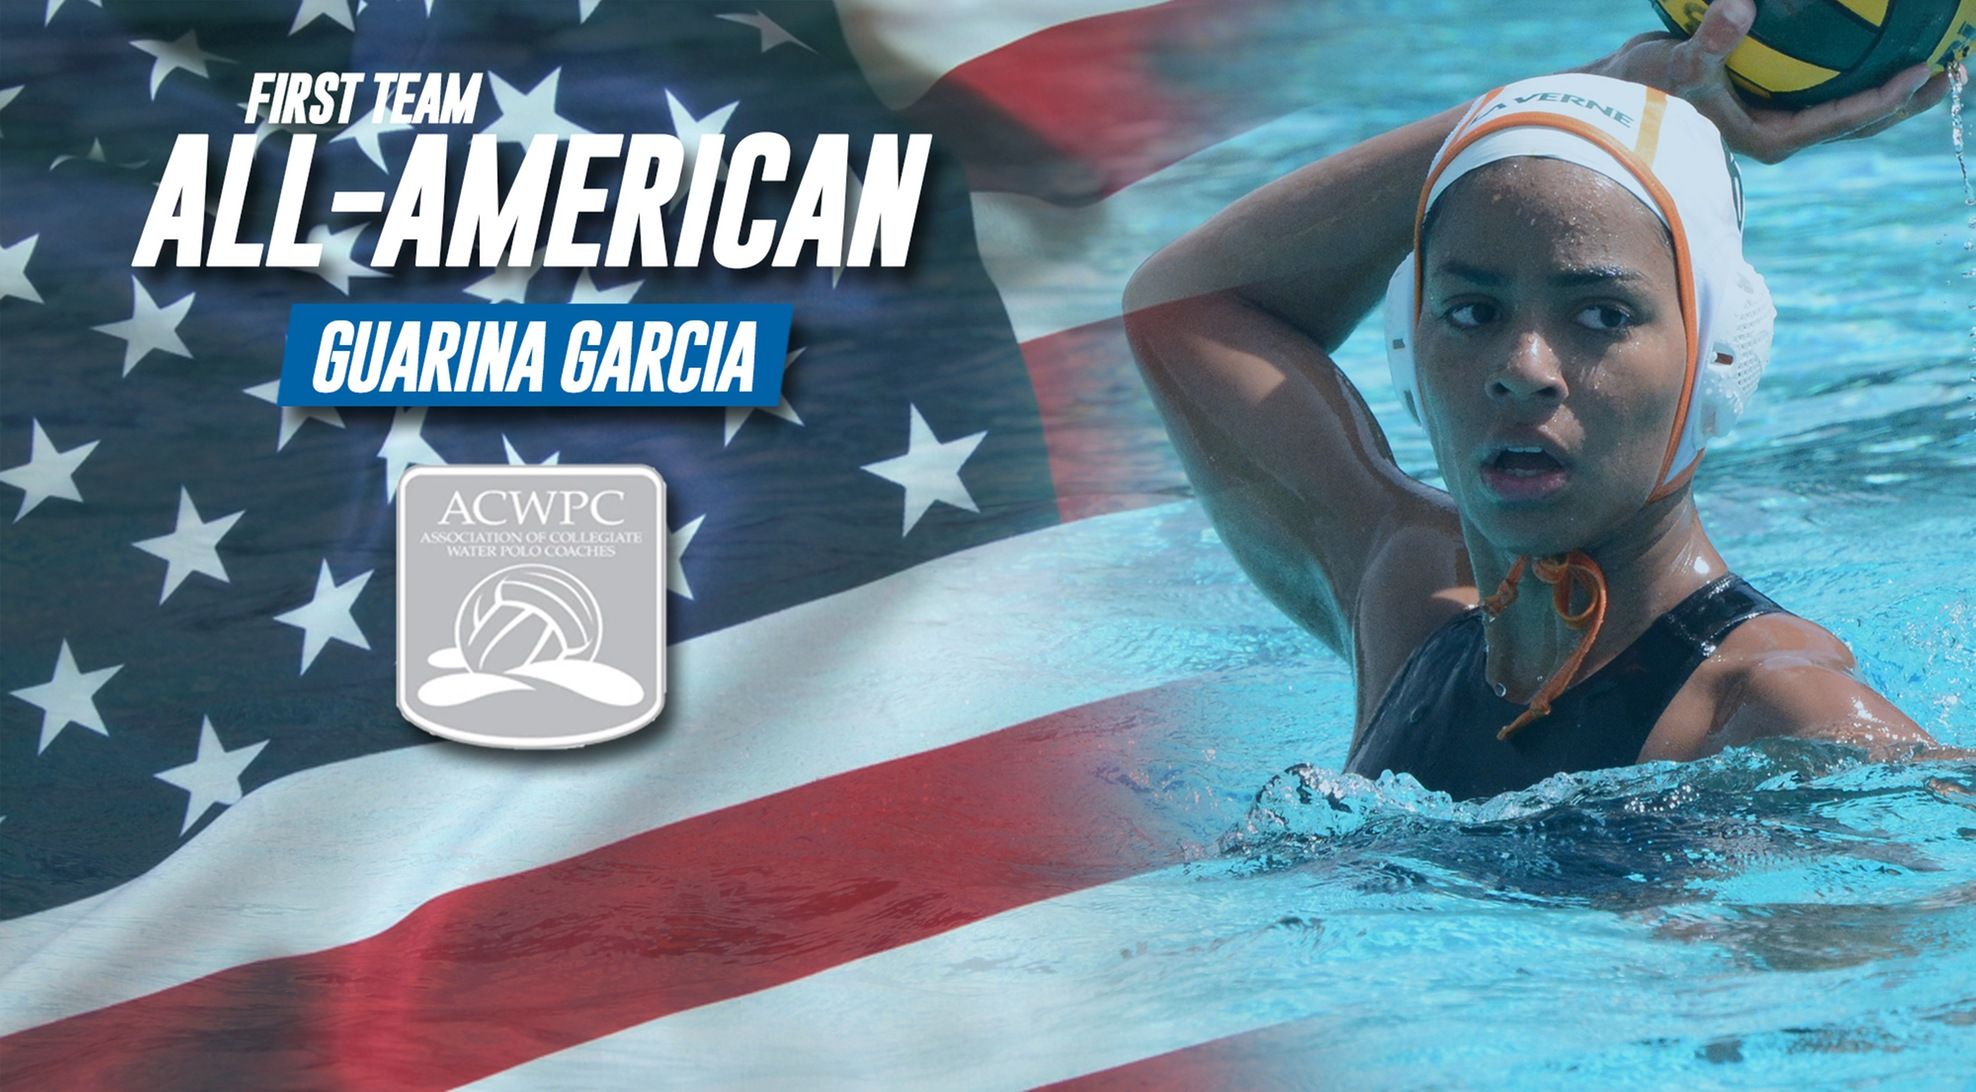 Garcia named ACWPC First Team All-American